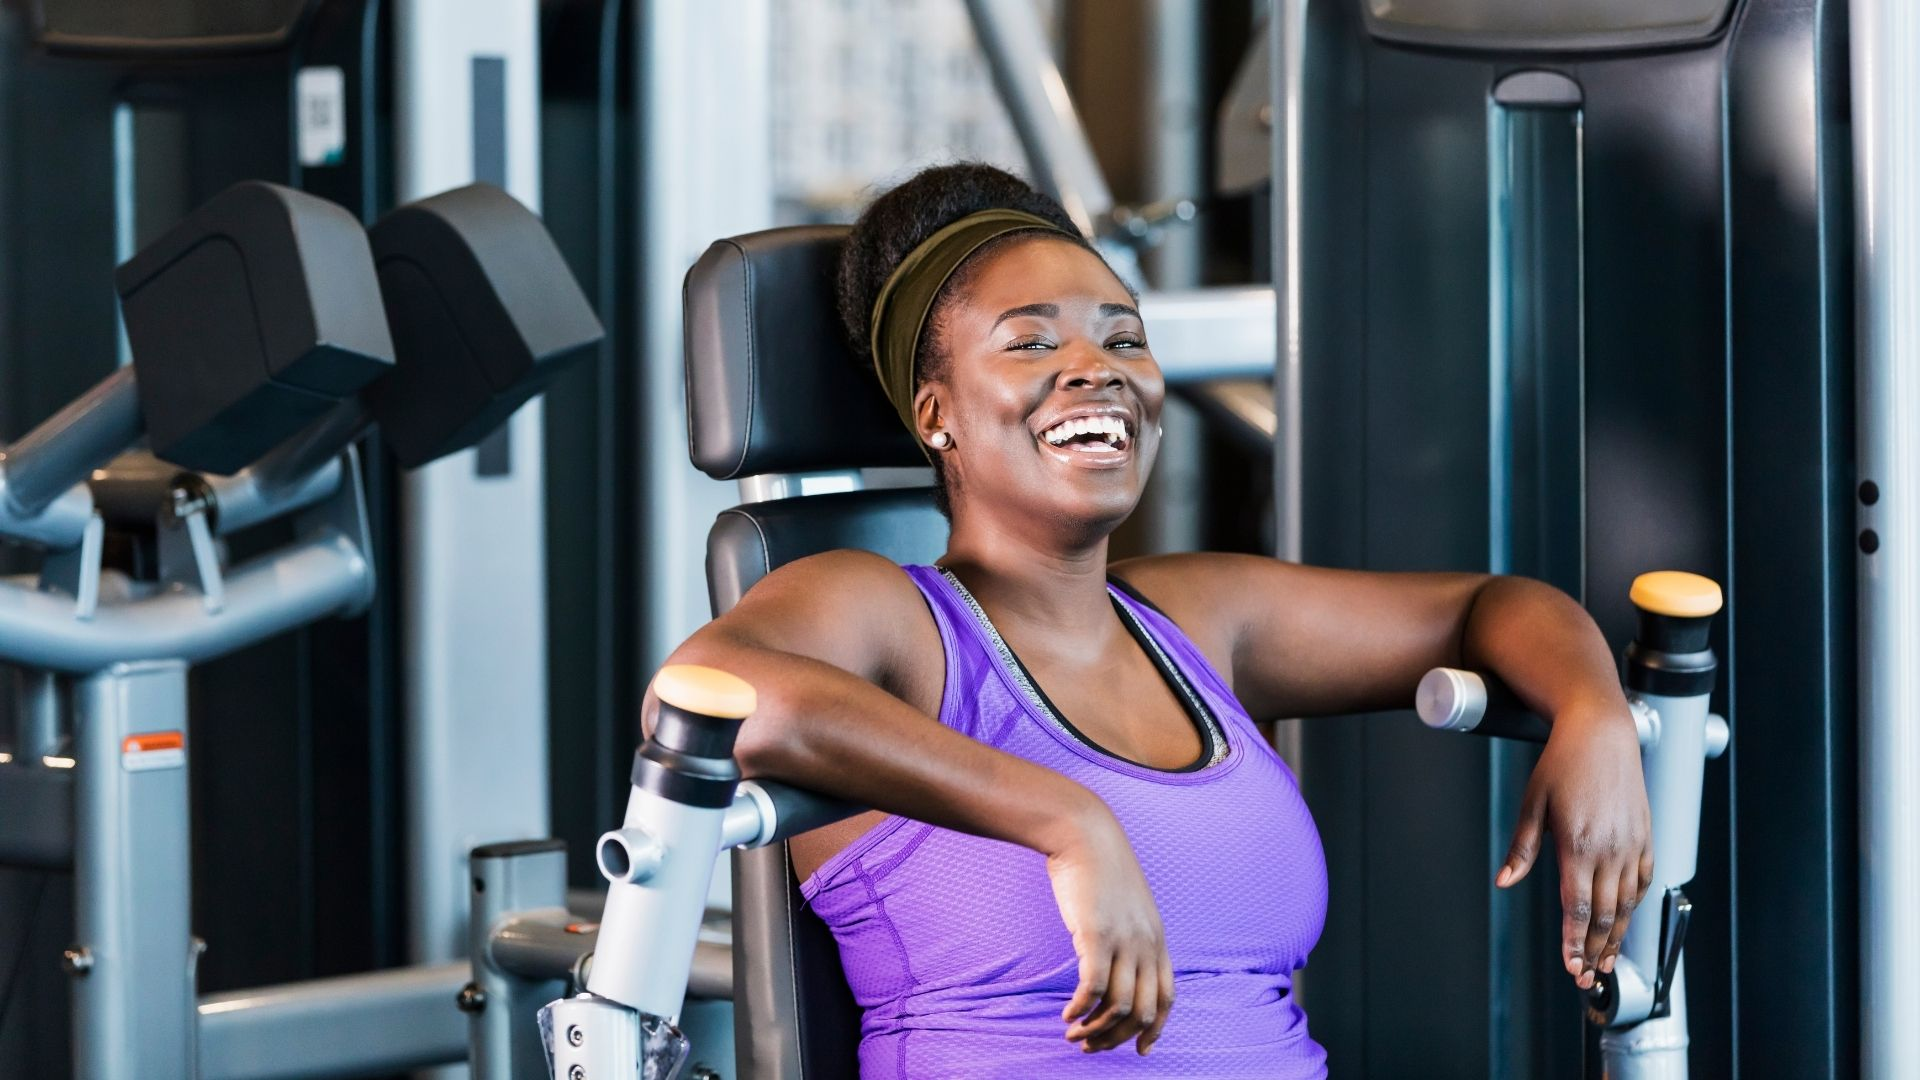 woman smiling while working out at the gym